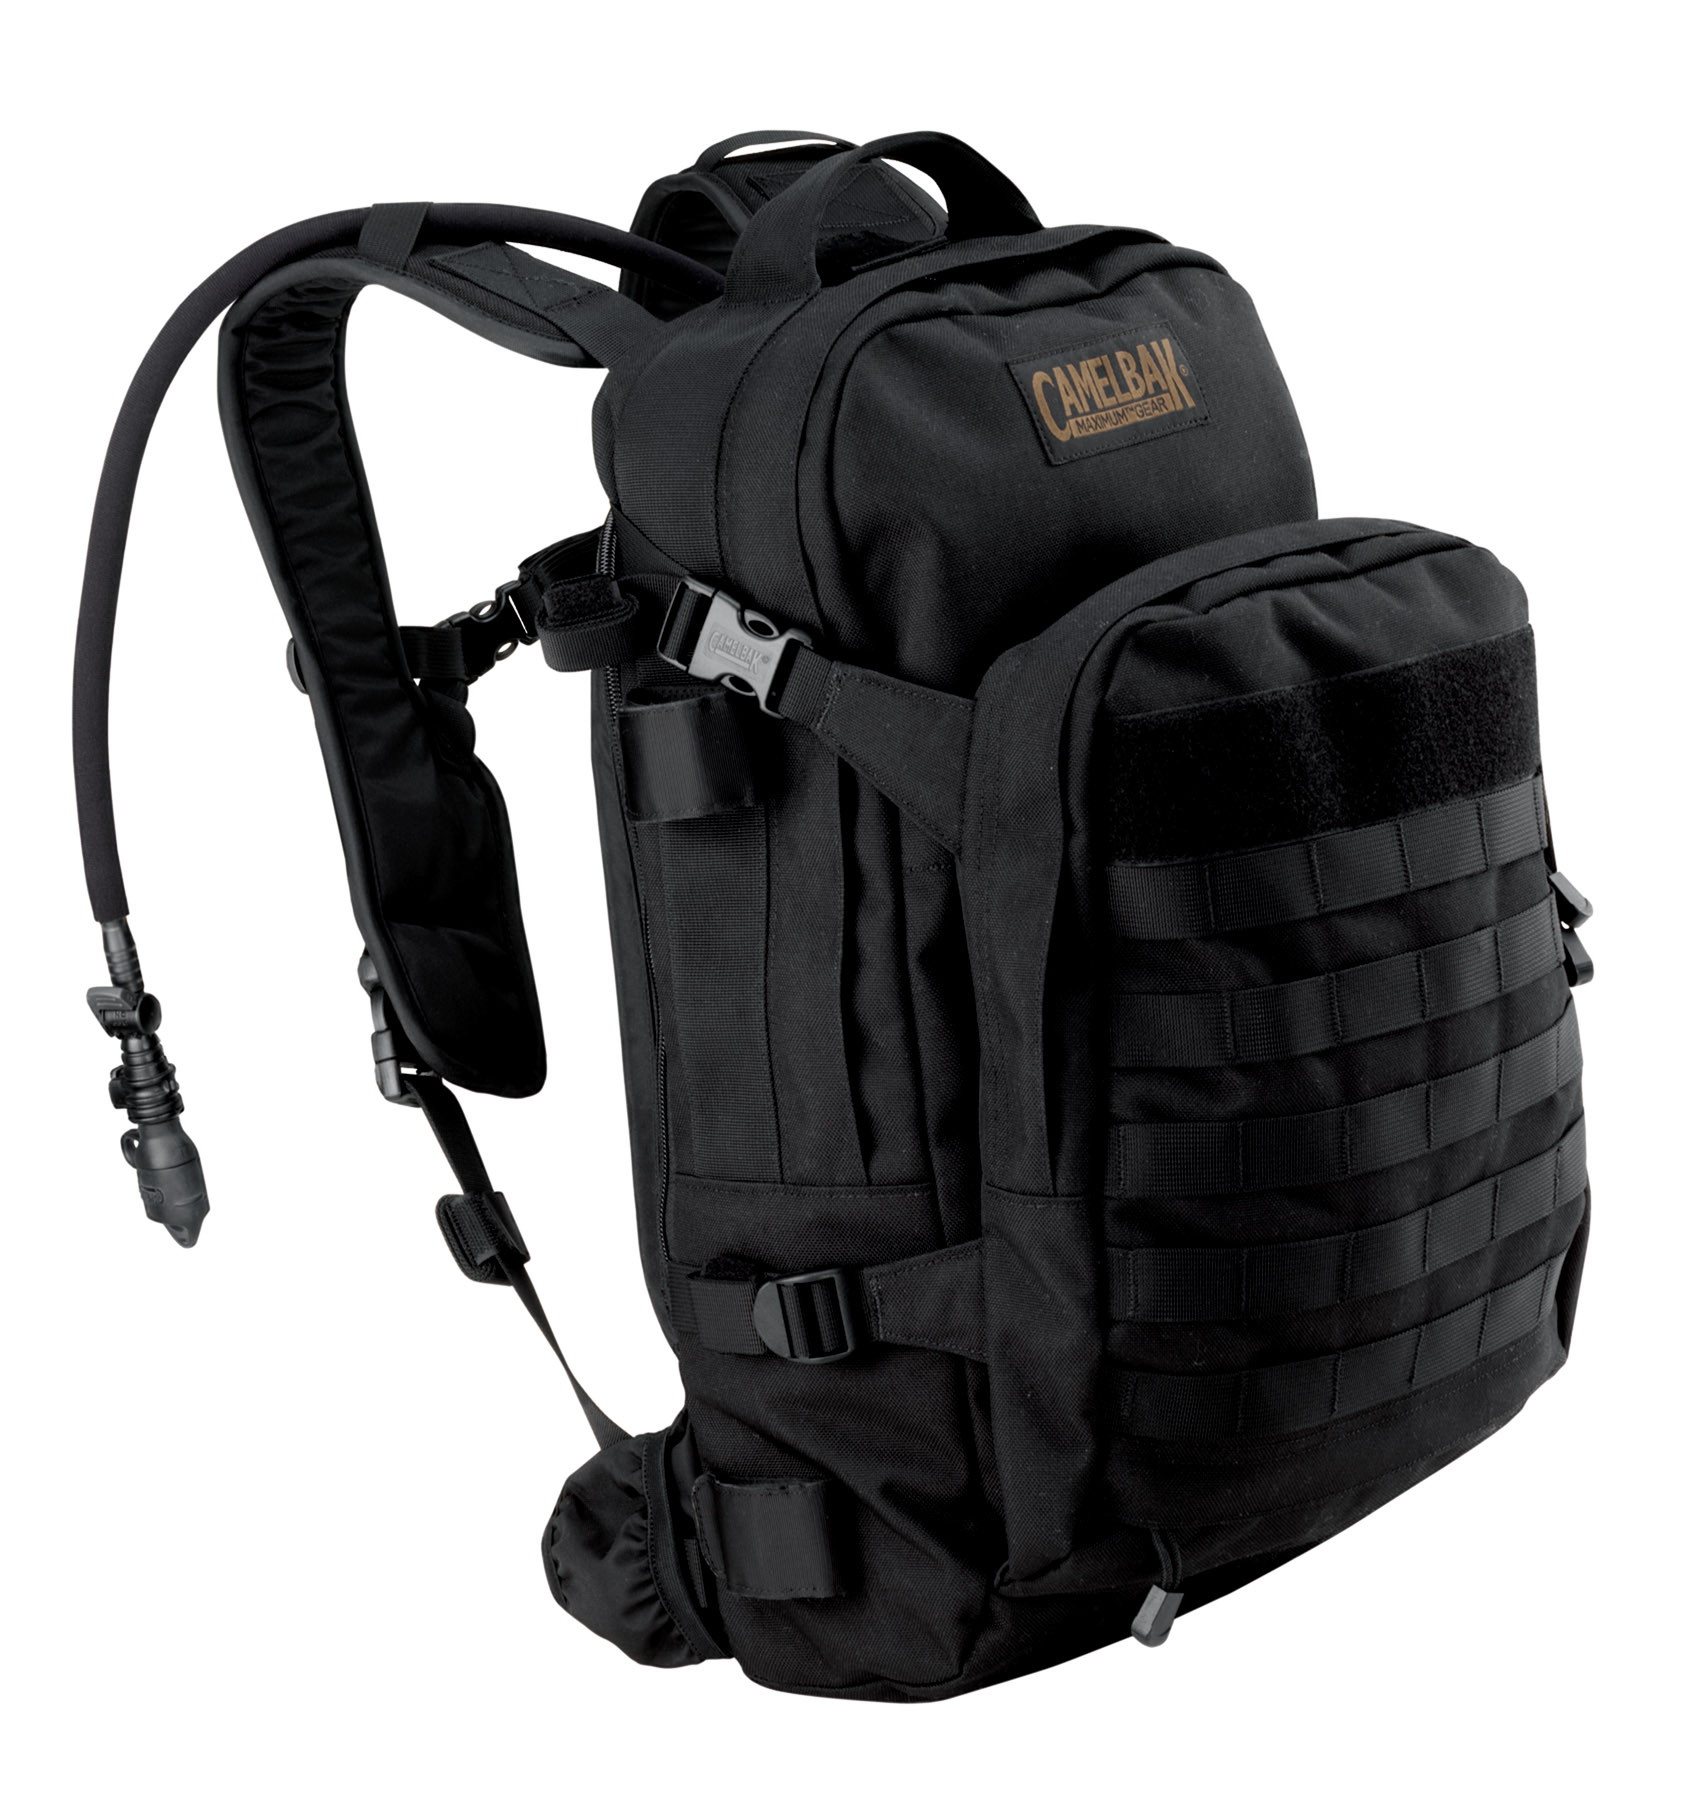 60442 ST 5 <!  :en  >Camelbak Delta 5 Tactical Vest and ST 5 Tactical Pack: Latest Tactical Hydration<!  :  >